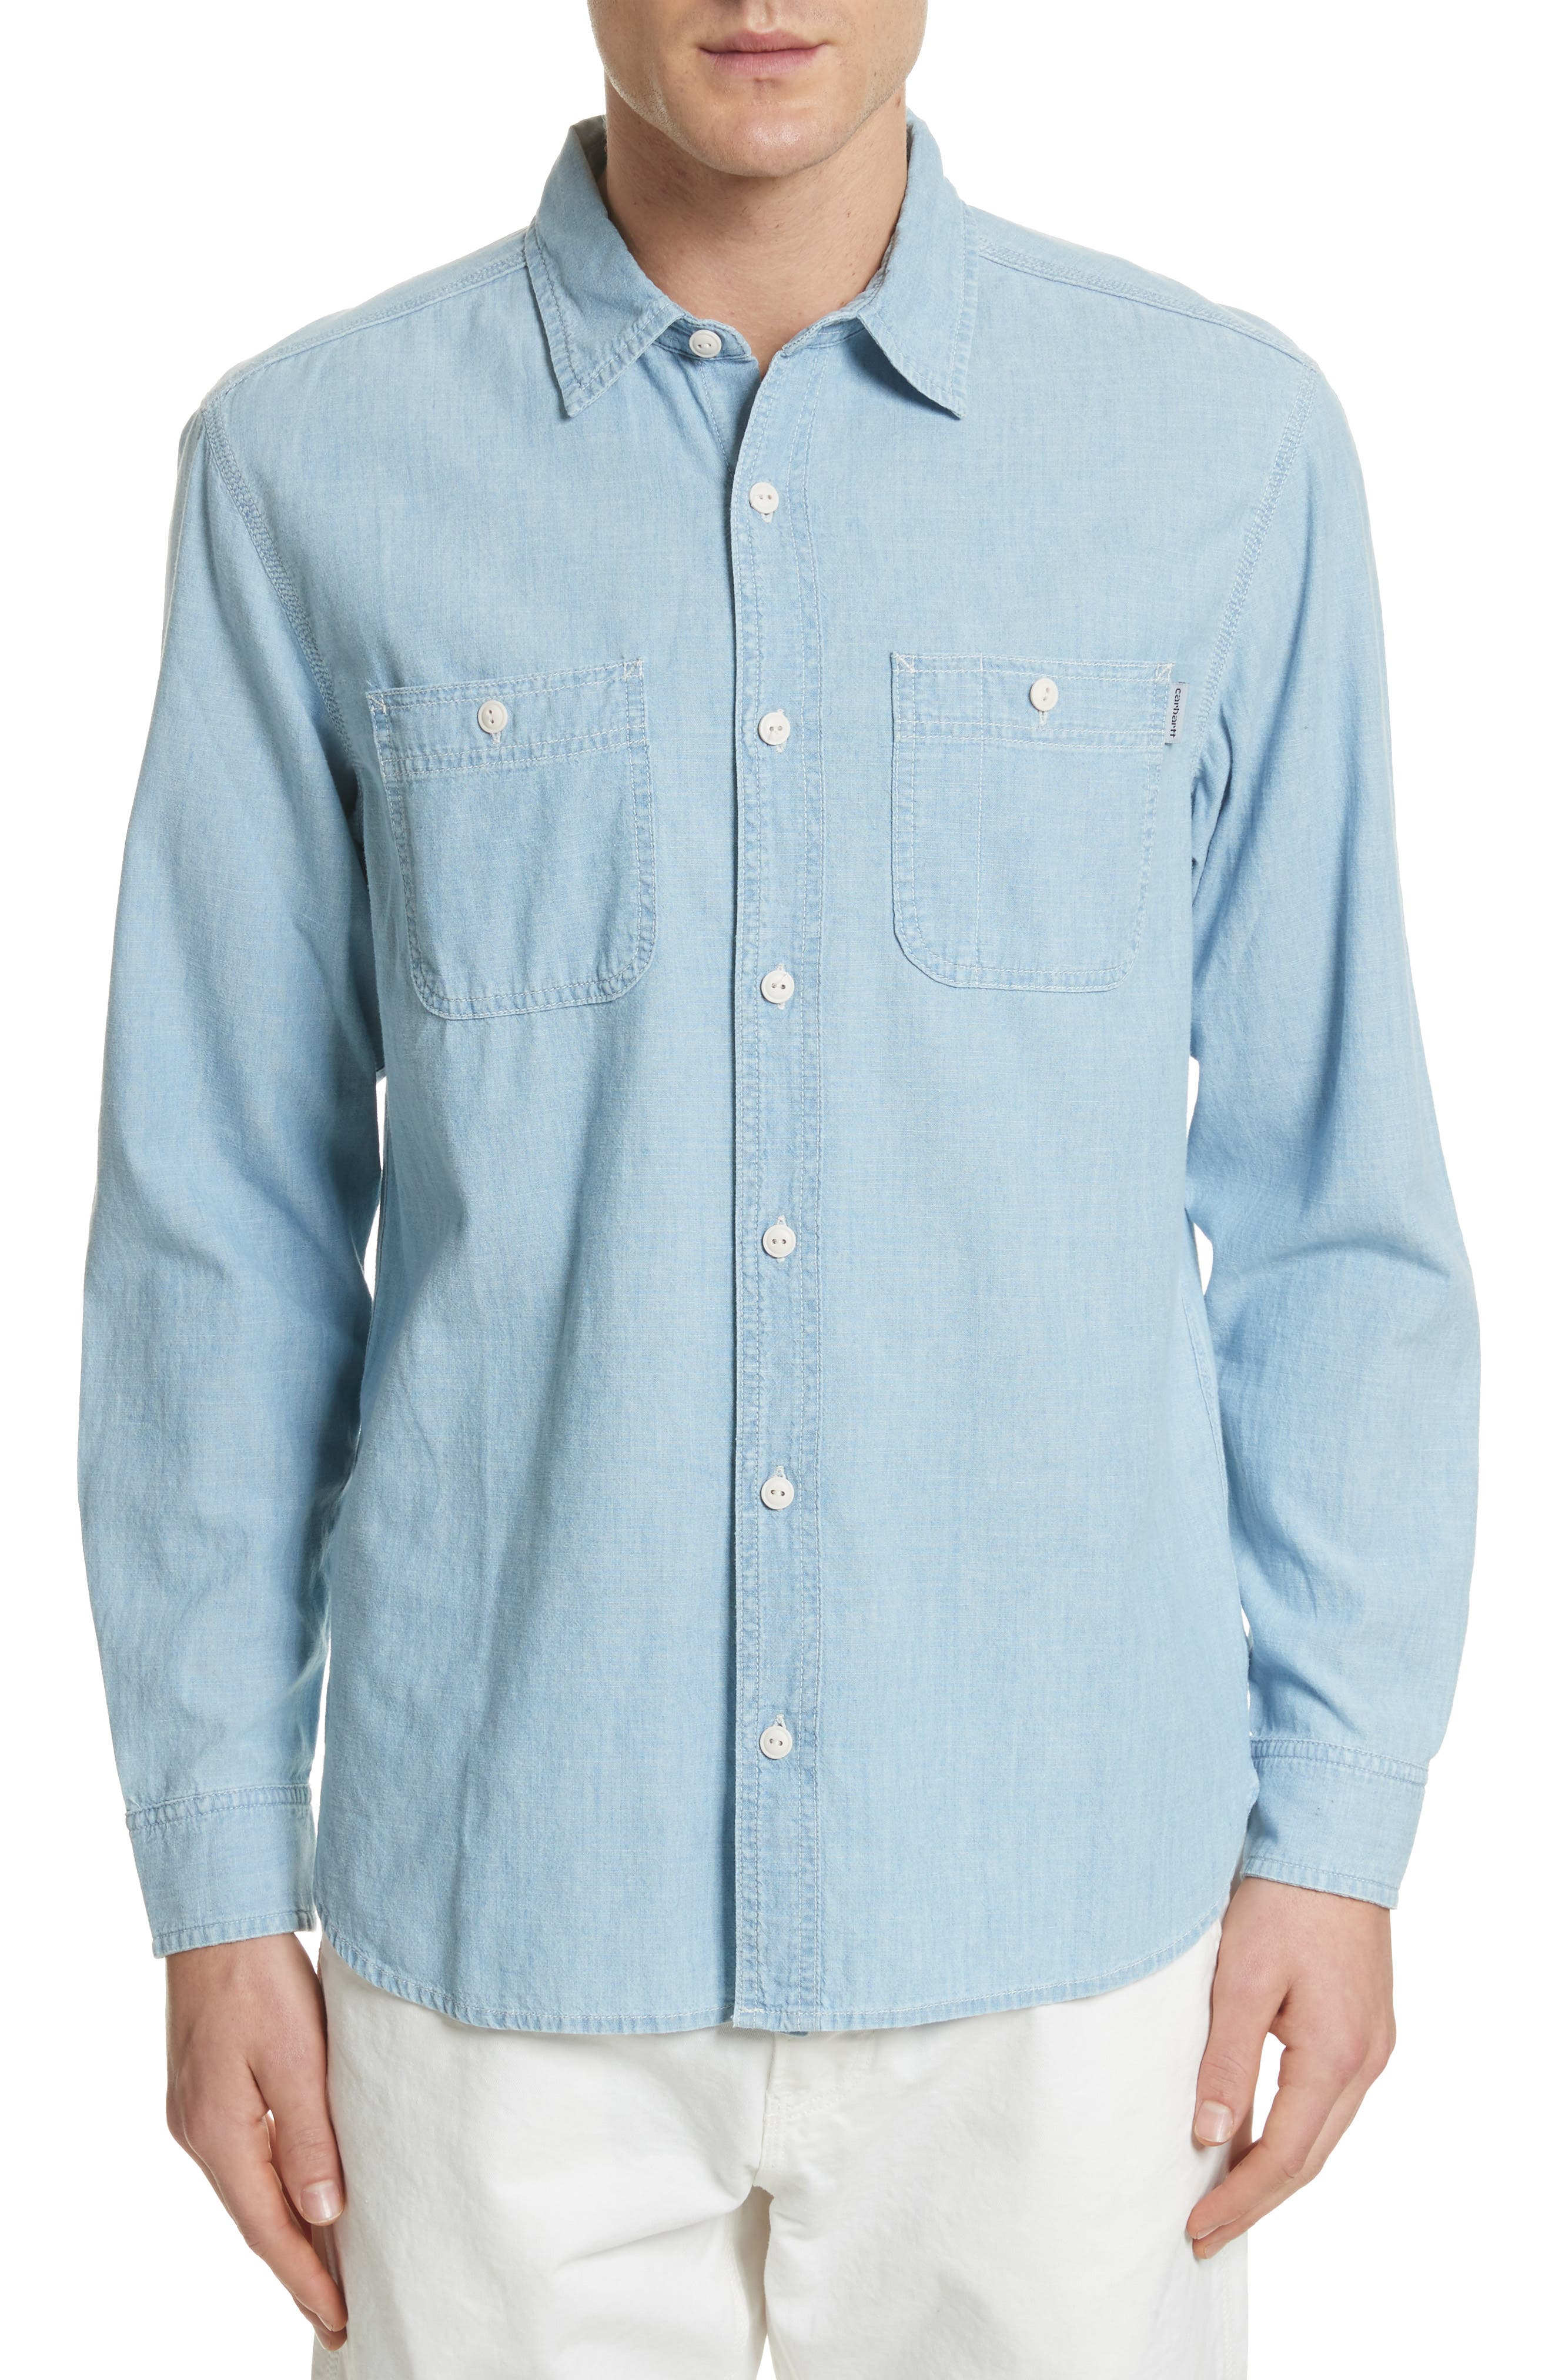 Clink Chambray Shirt,                         Main,                         color, Blue Stone Washed